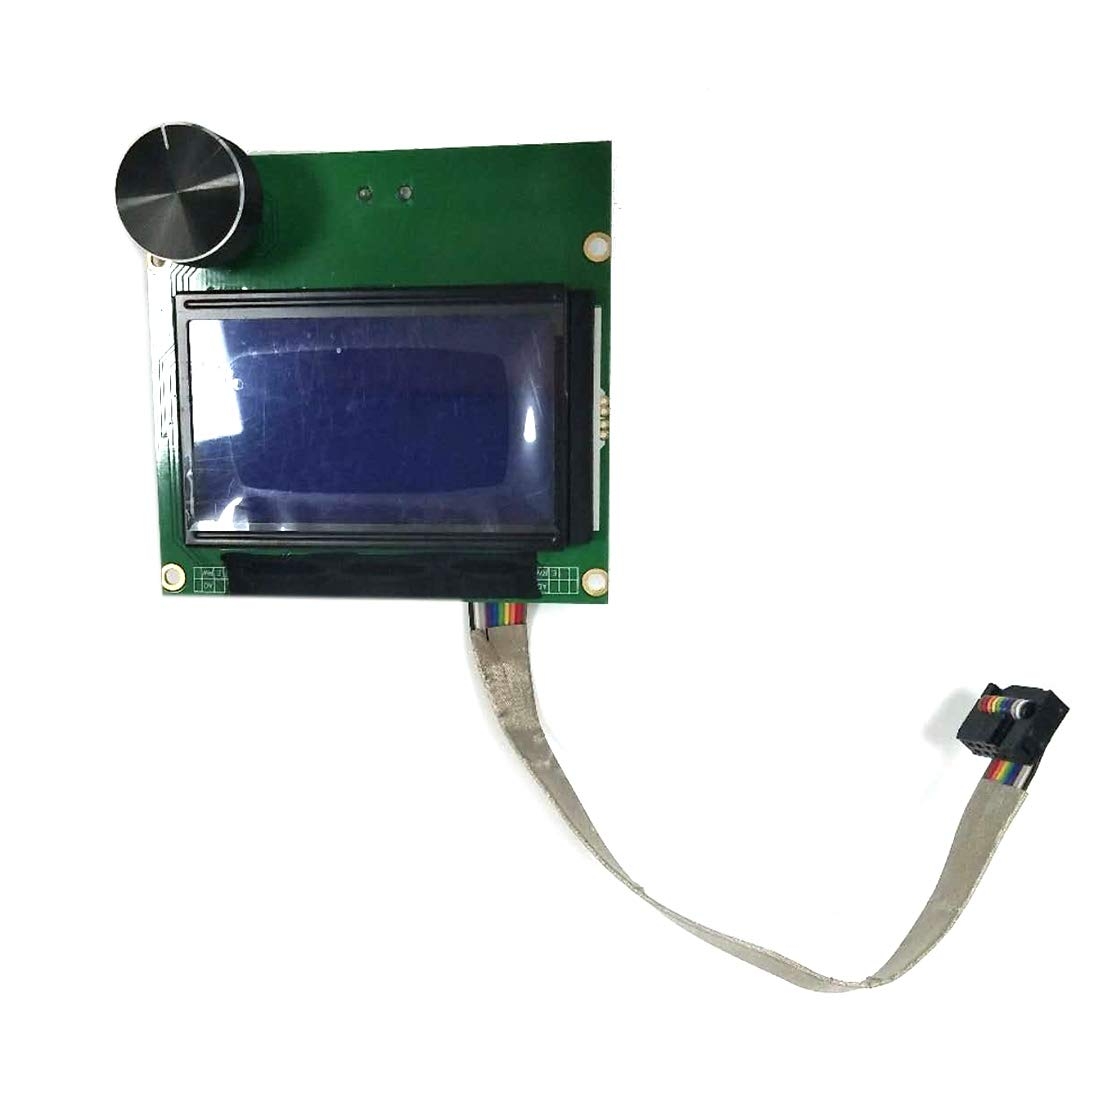 Creality 3D Printer Display Screen with Encoder Screen for CR-10S